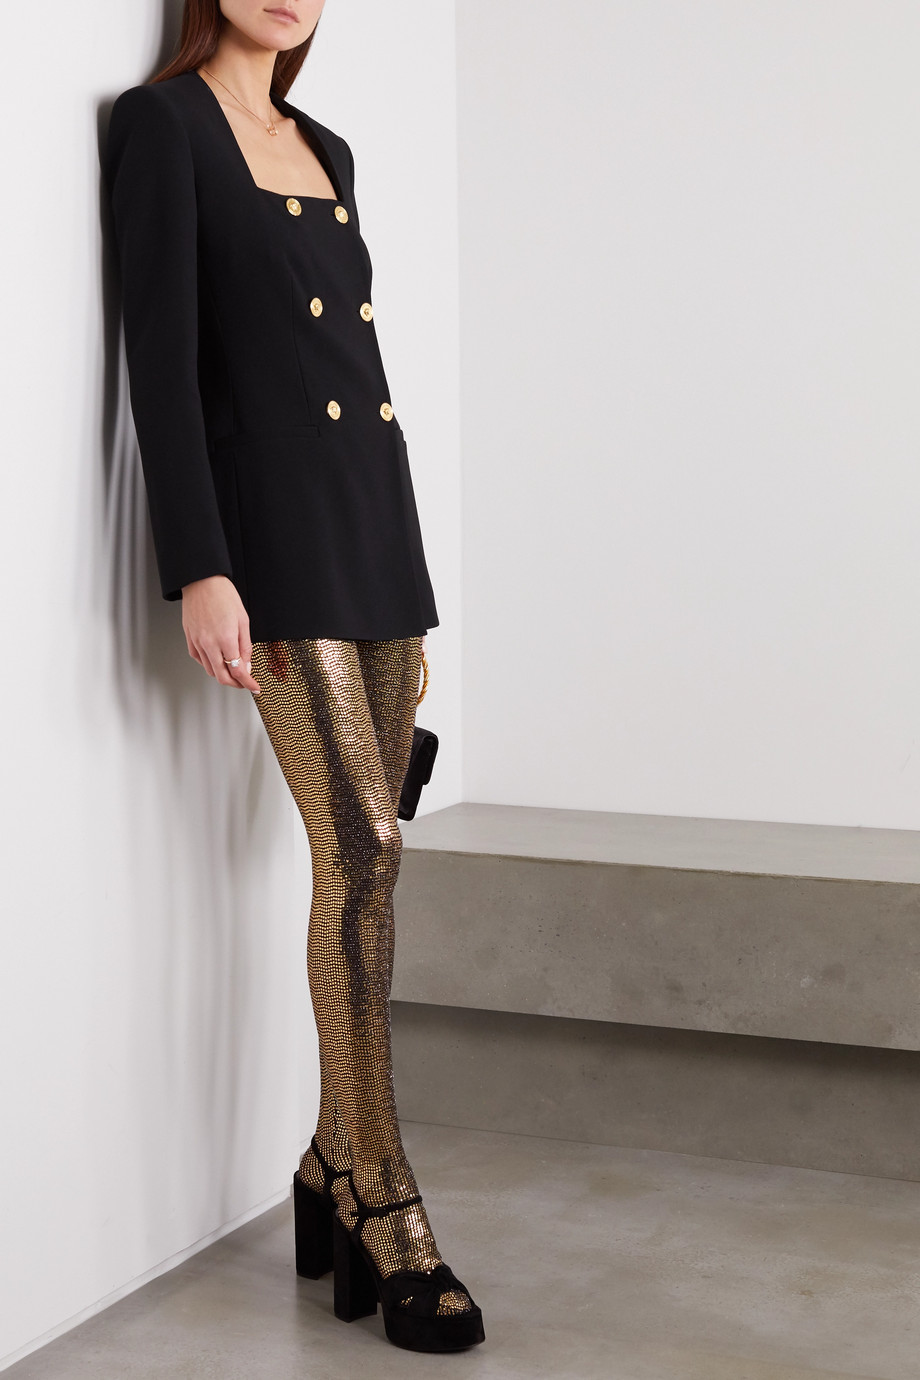 Gucci Lamé-coated metallic tights